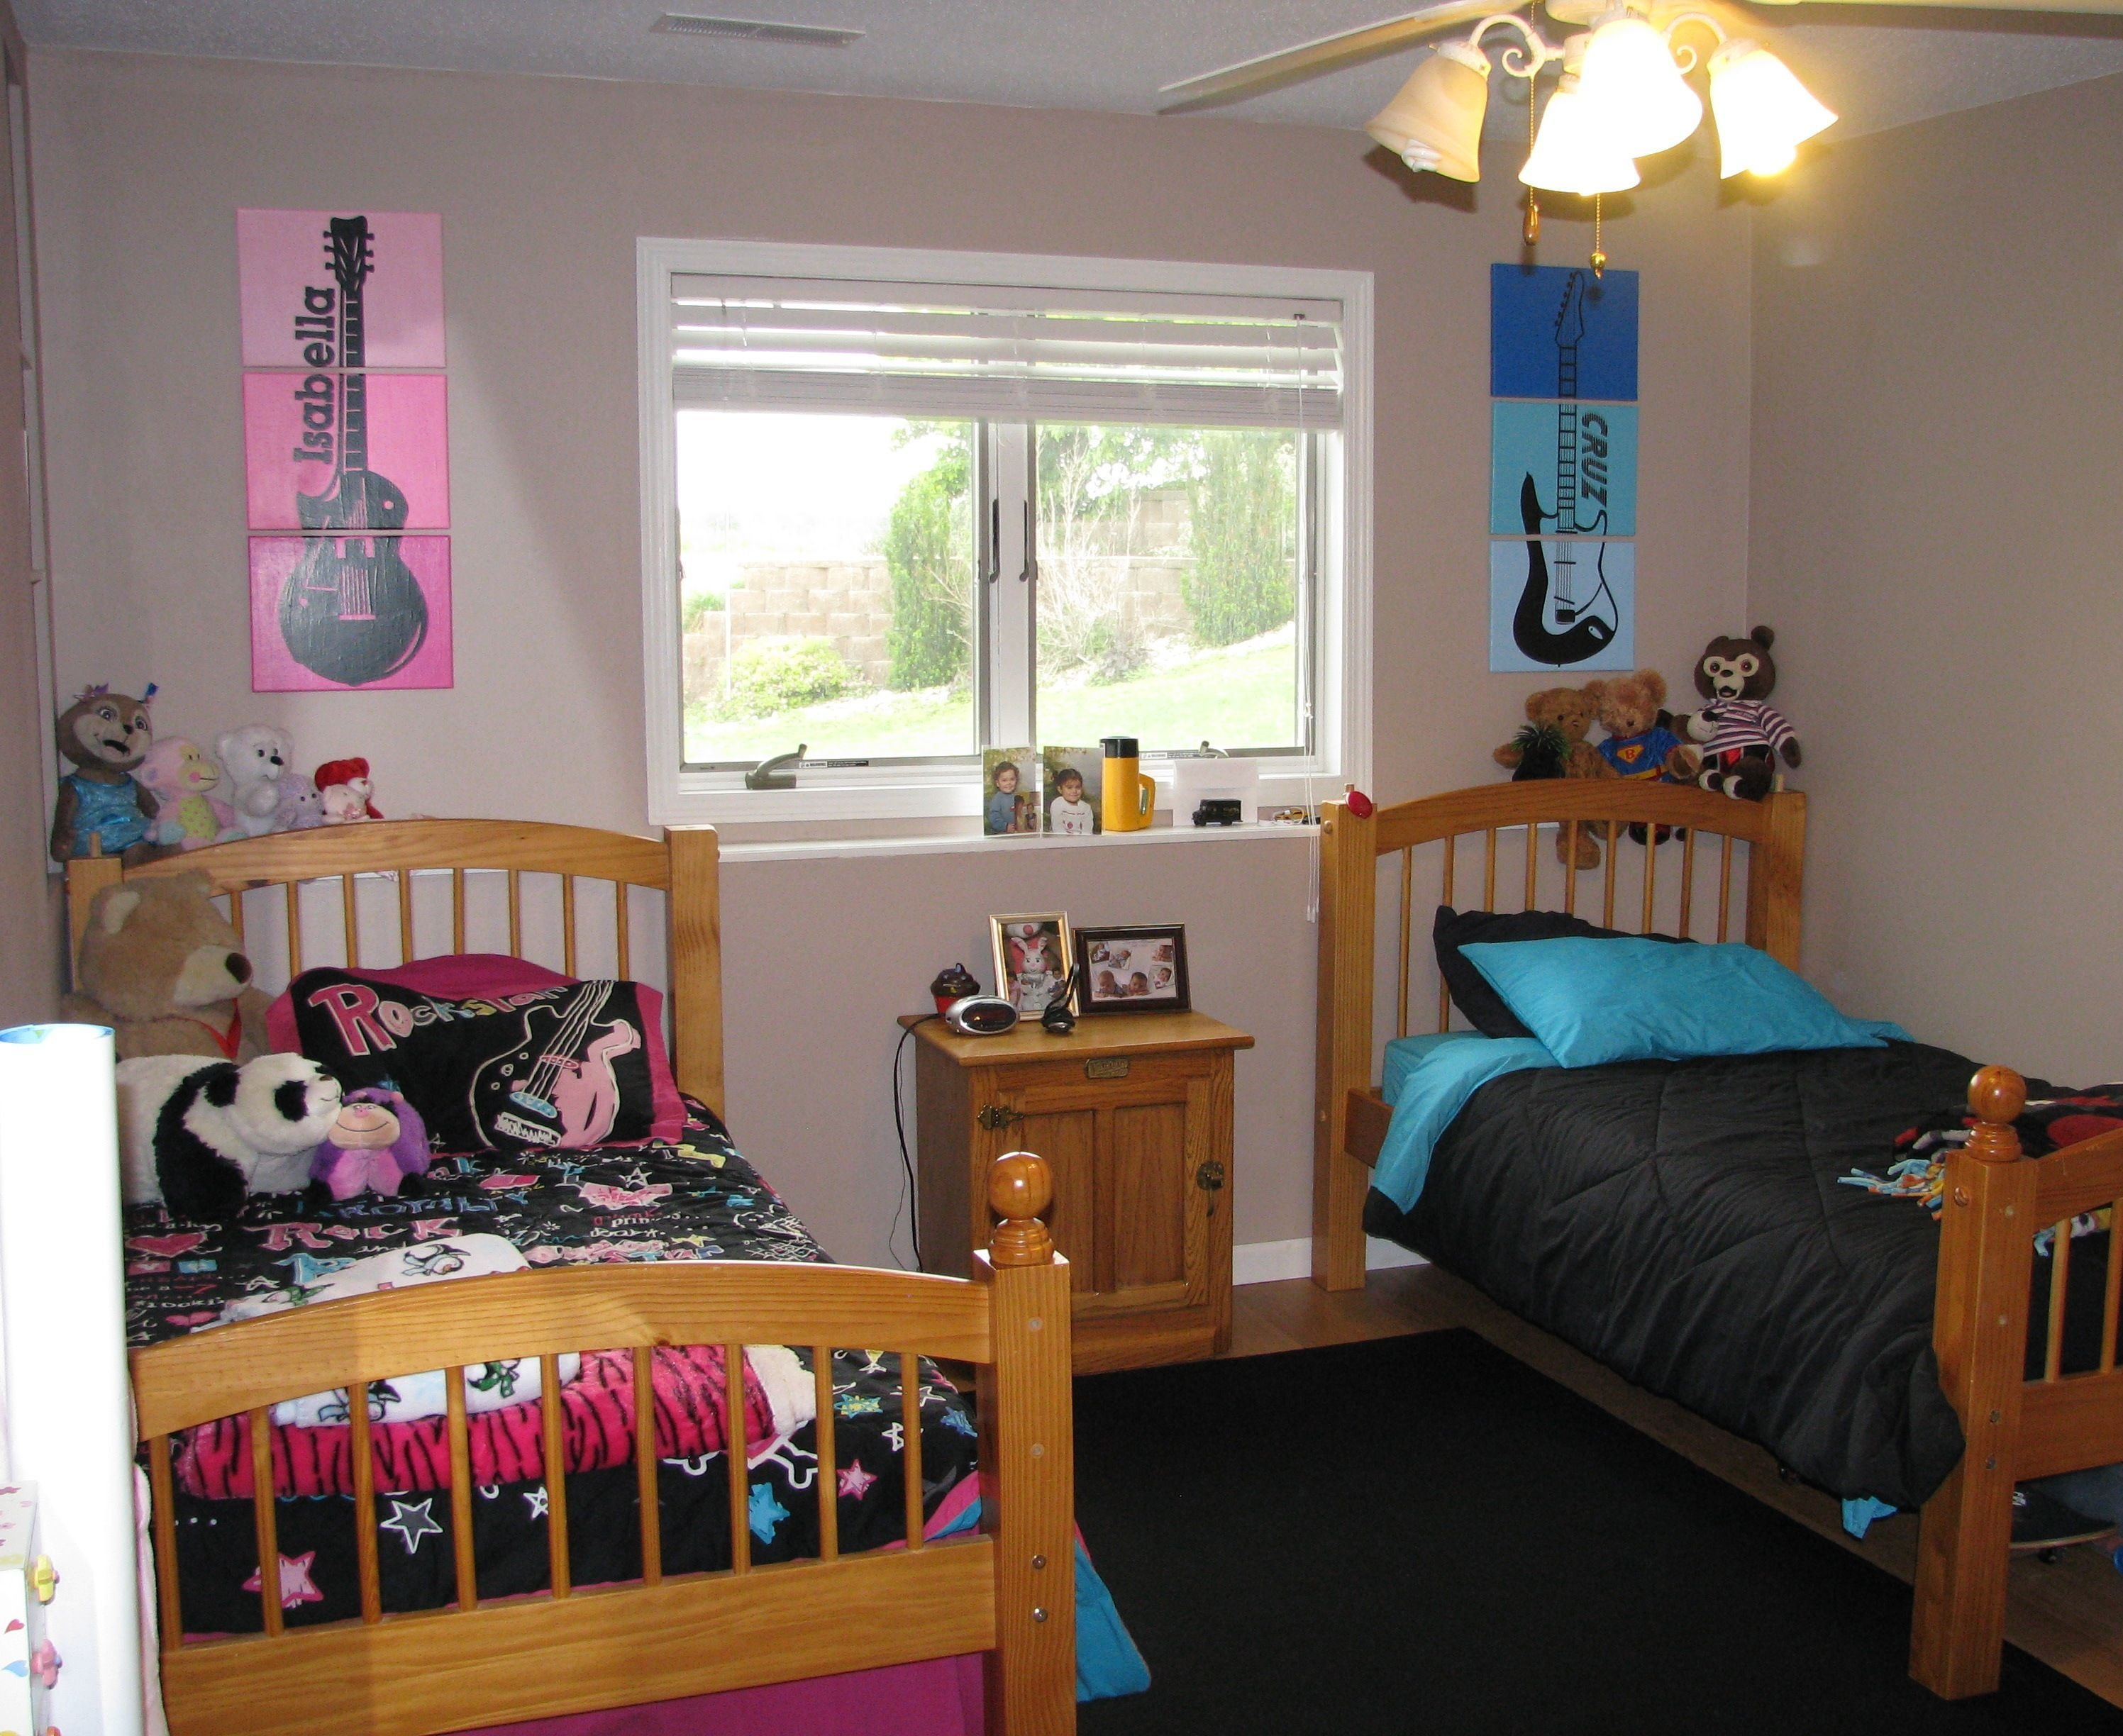 Best Rock N Roll Guitar Bedroom For My 7 Year Old Twins Boy With Pictures